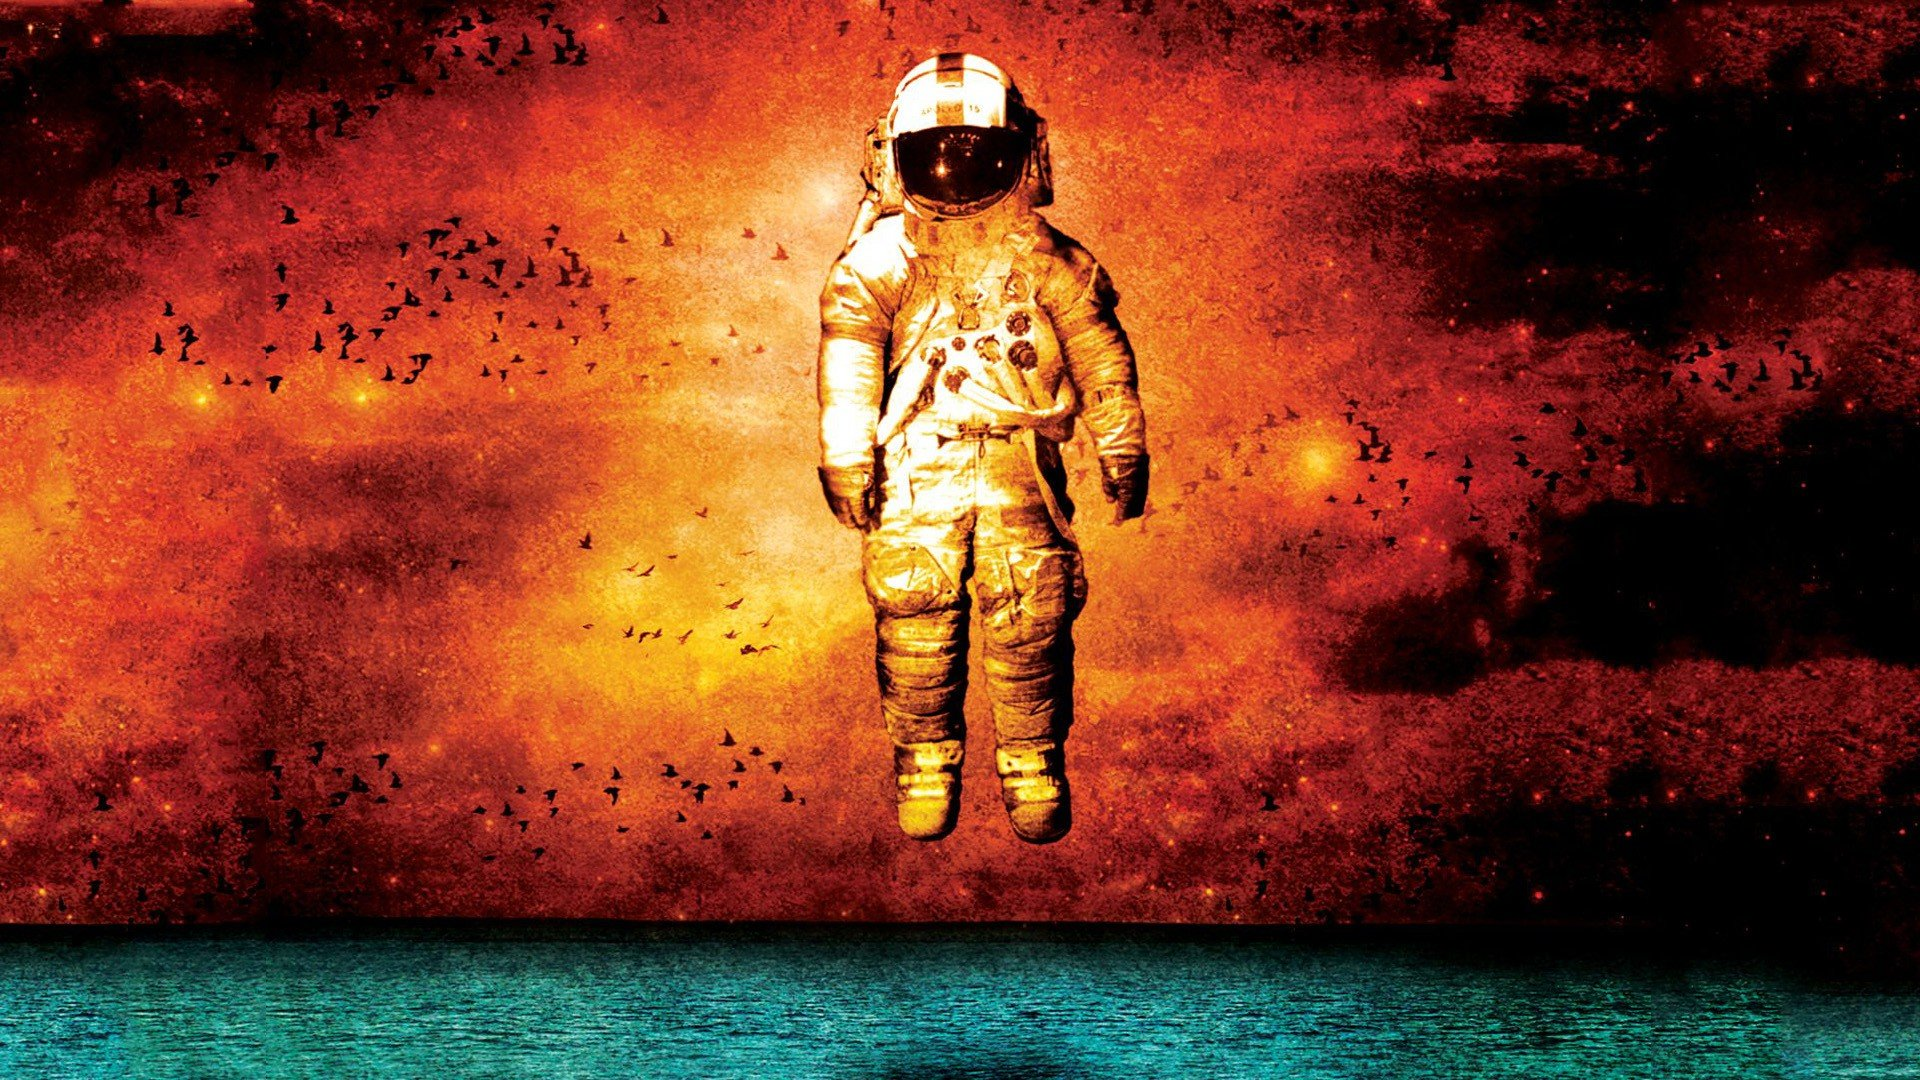 brand new deja entendu HD Wallpaper   Companies Brands 1076509 1920x1080